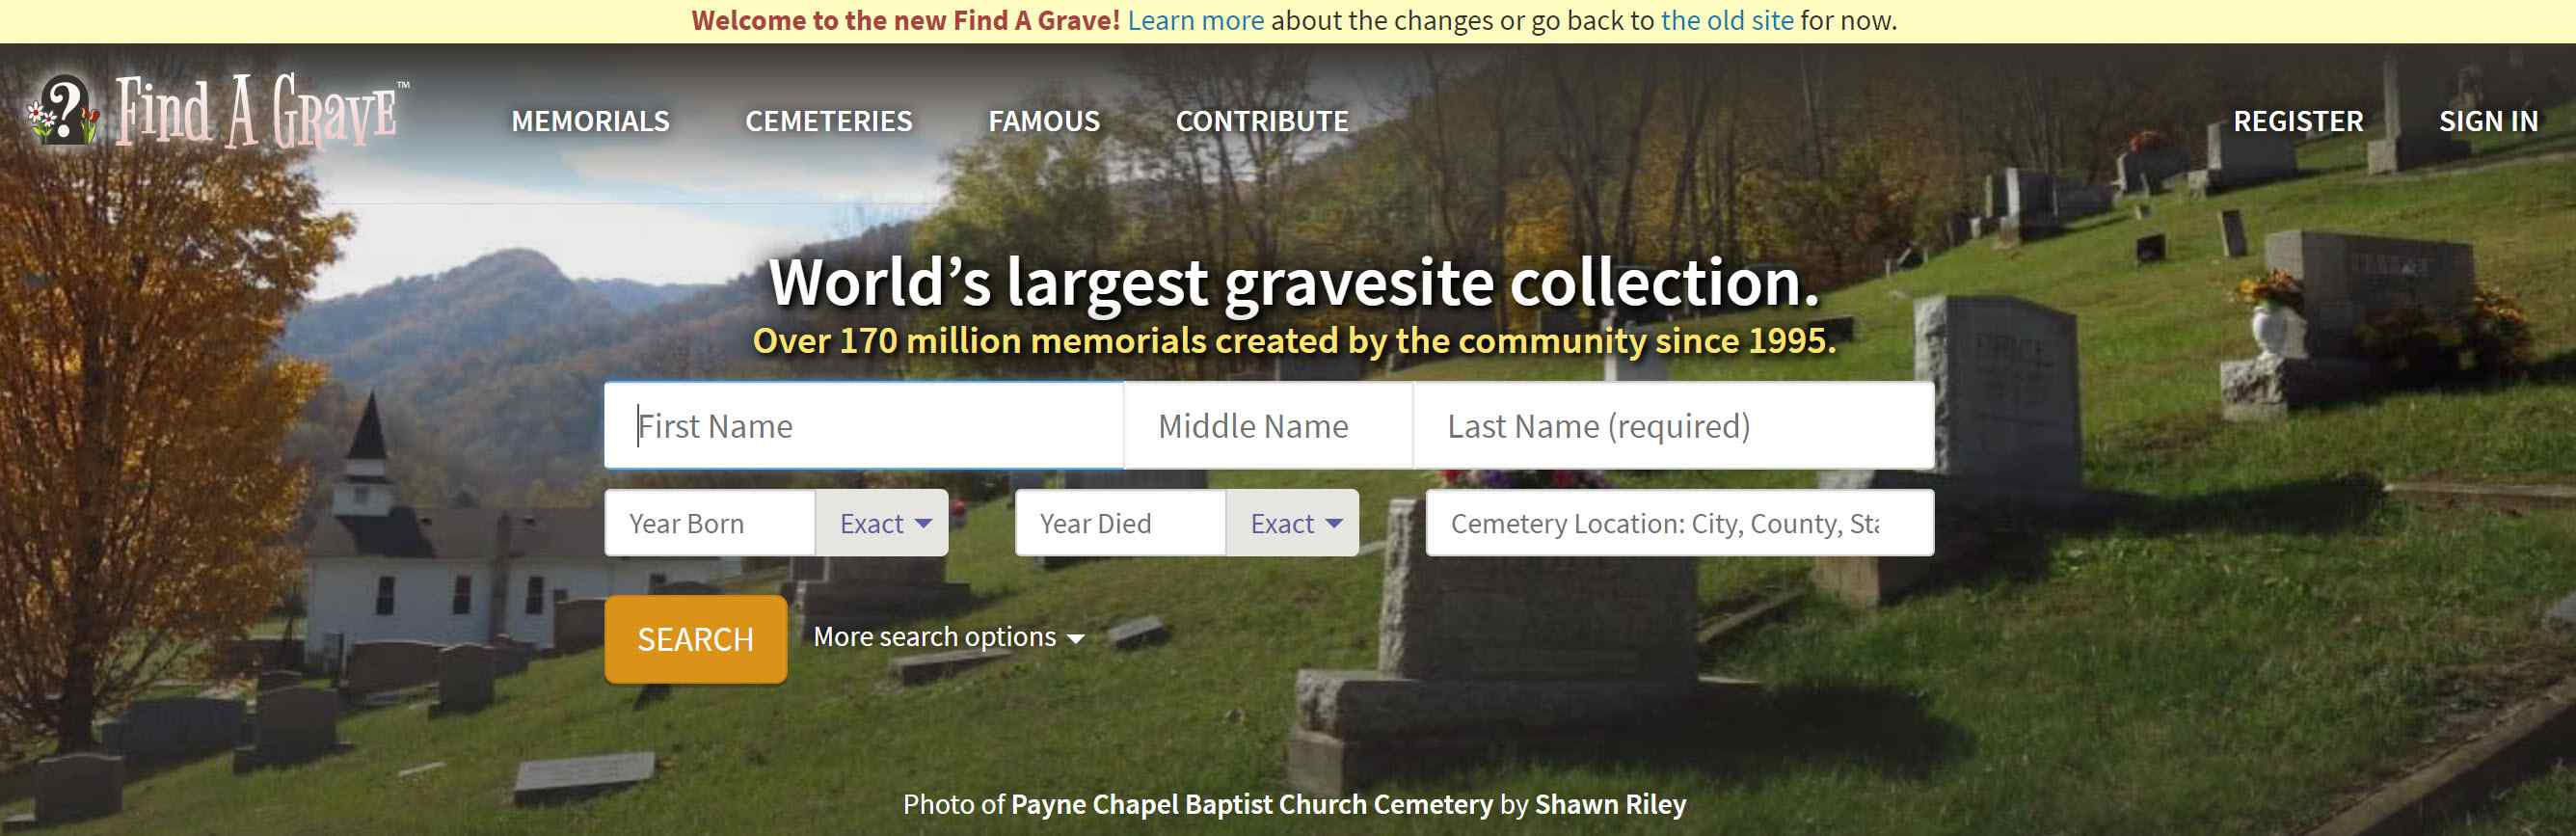 find grave site records using free online resources